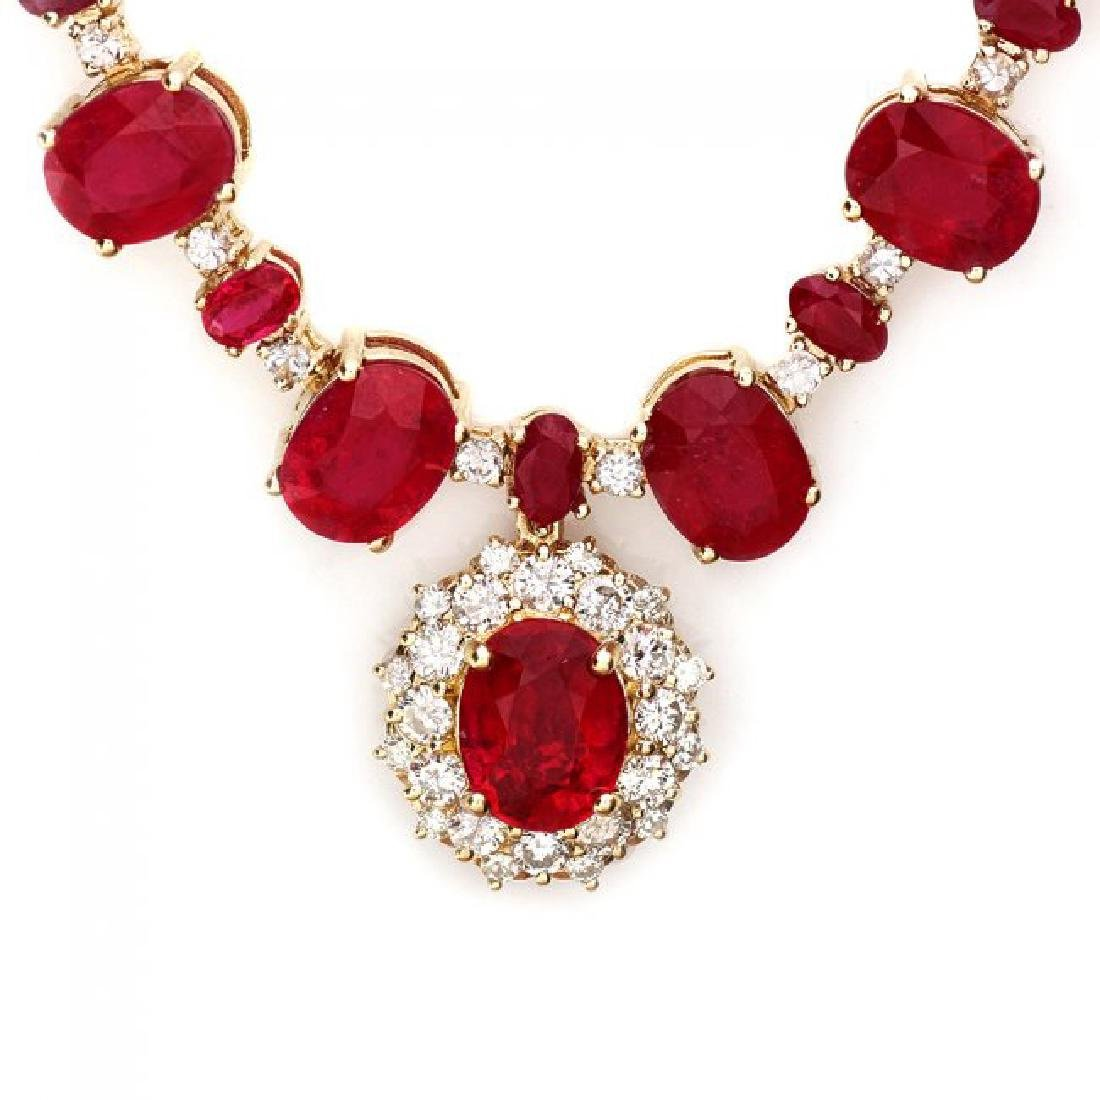 14k Gold 72.00ct Ruby 1.30ct Diamond Necklace - 2